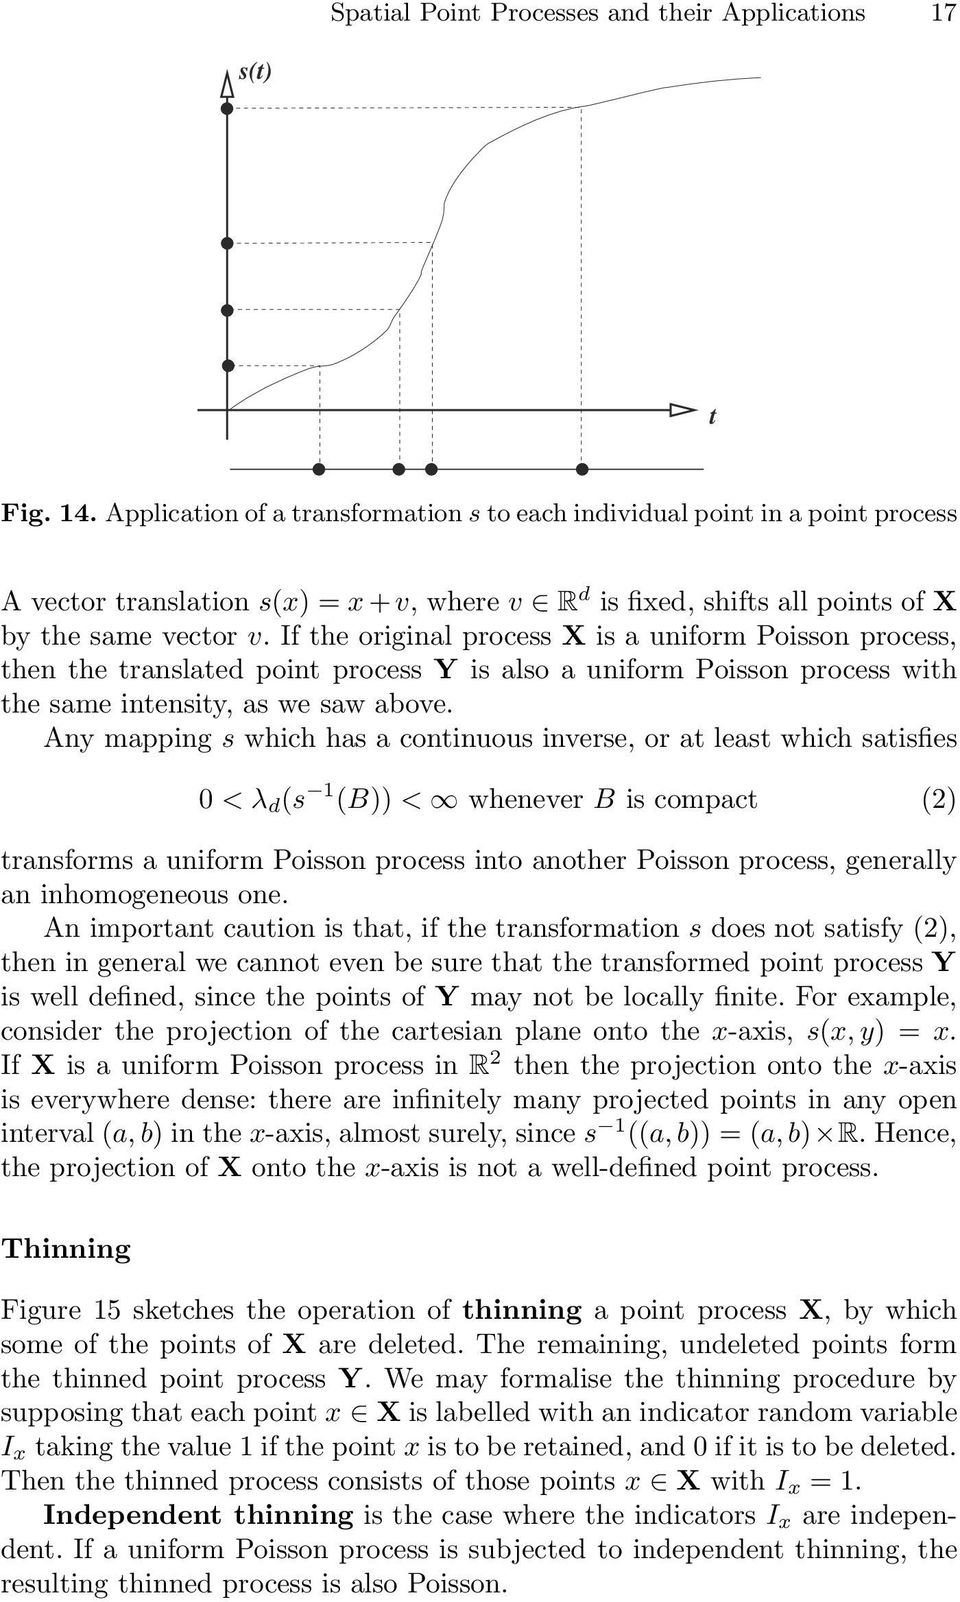 If the original process X is a uniform Poisson process, then the translated point process Y is also a uniform Poisson process with the same intensity, as we saw above.